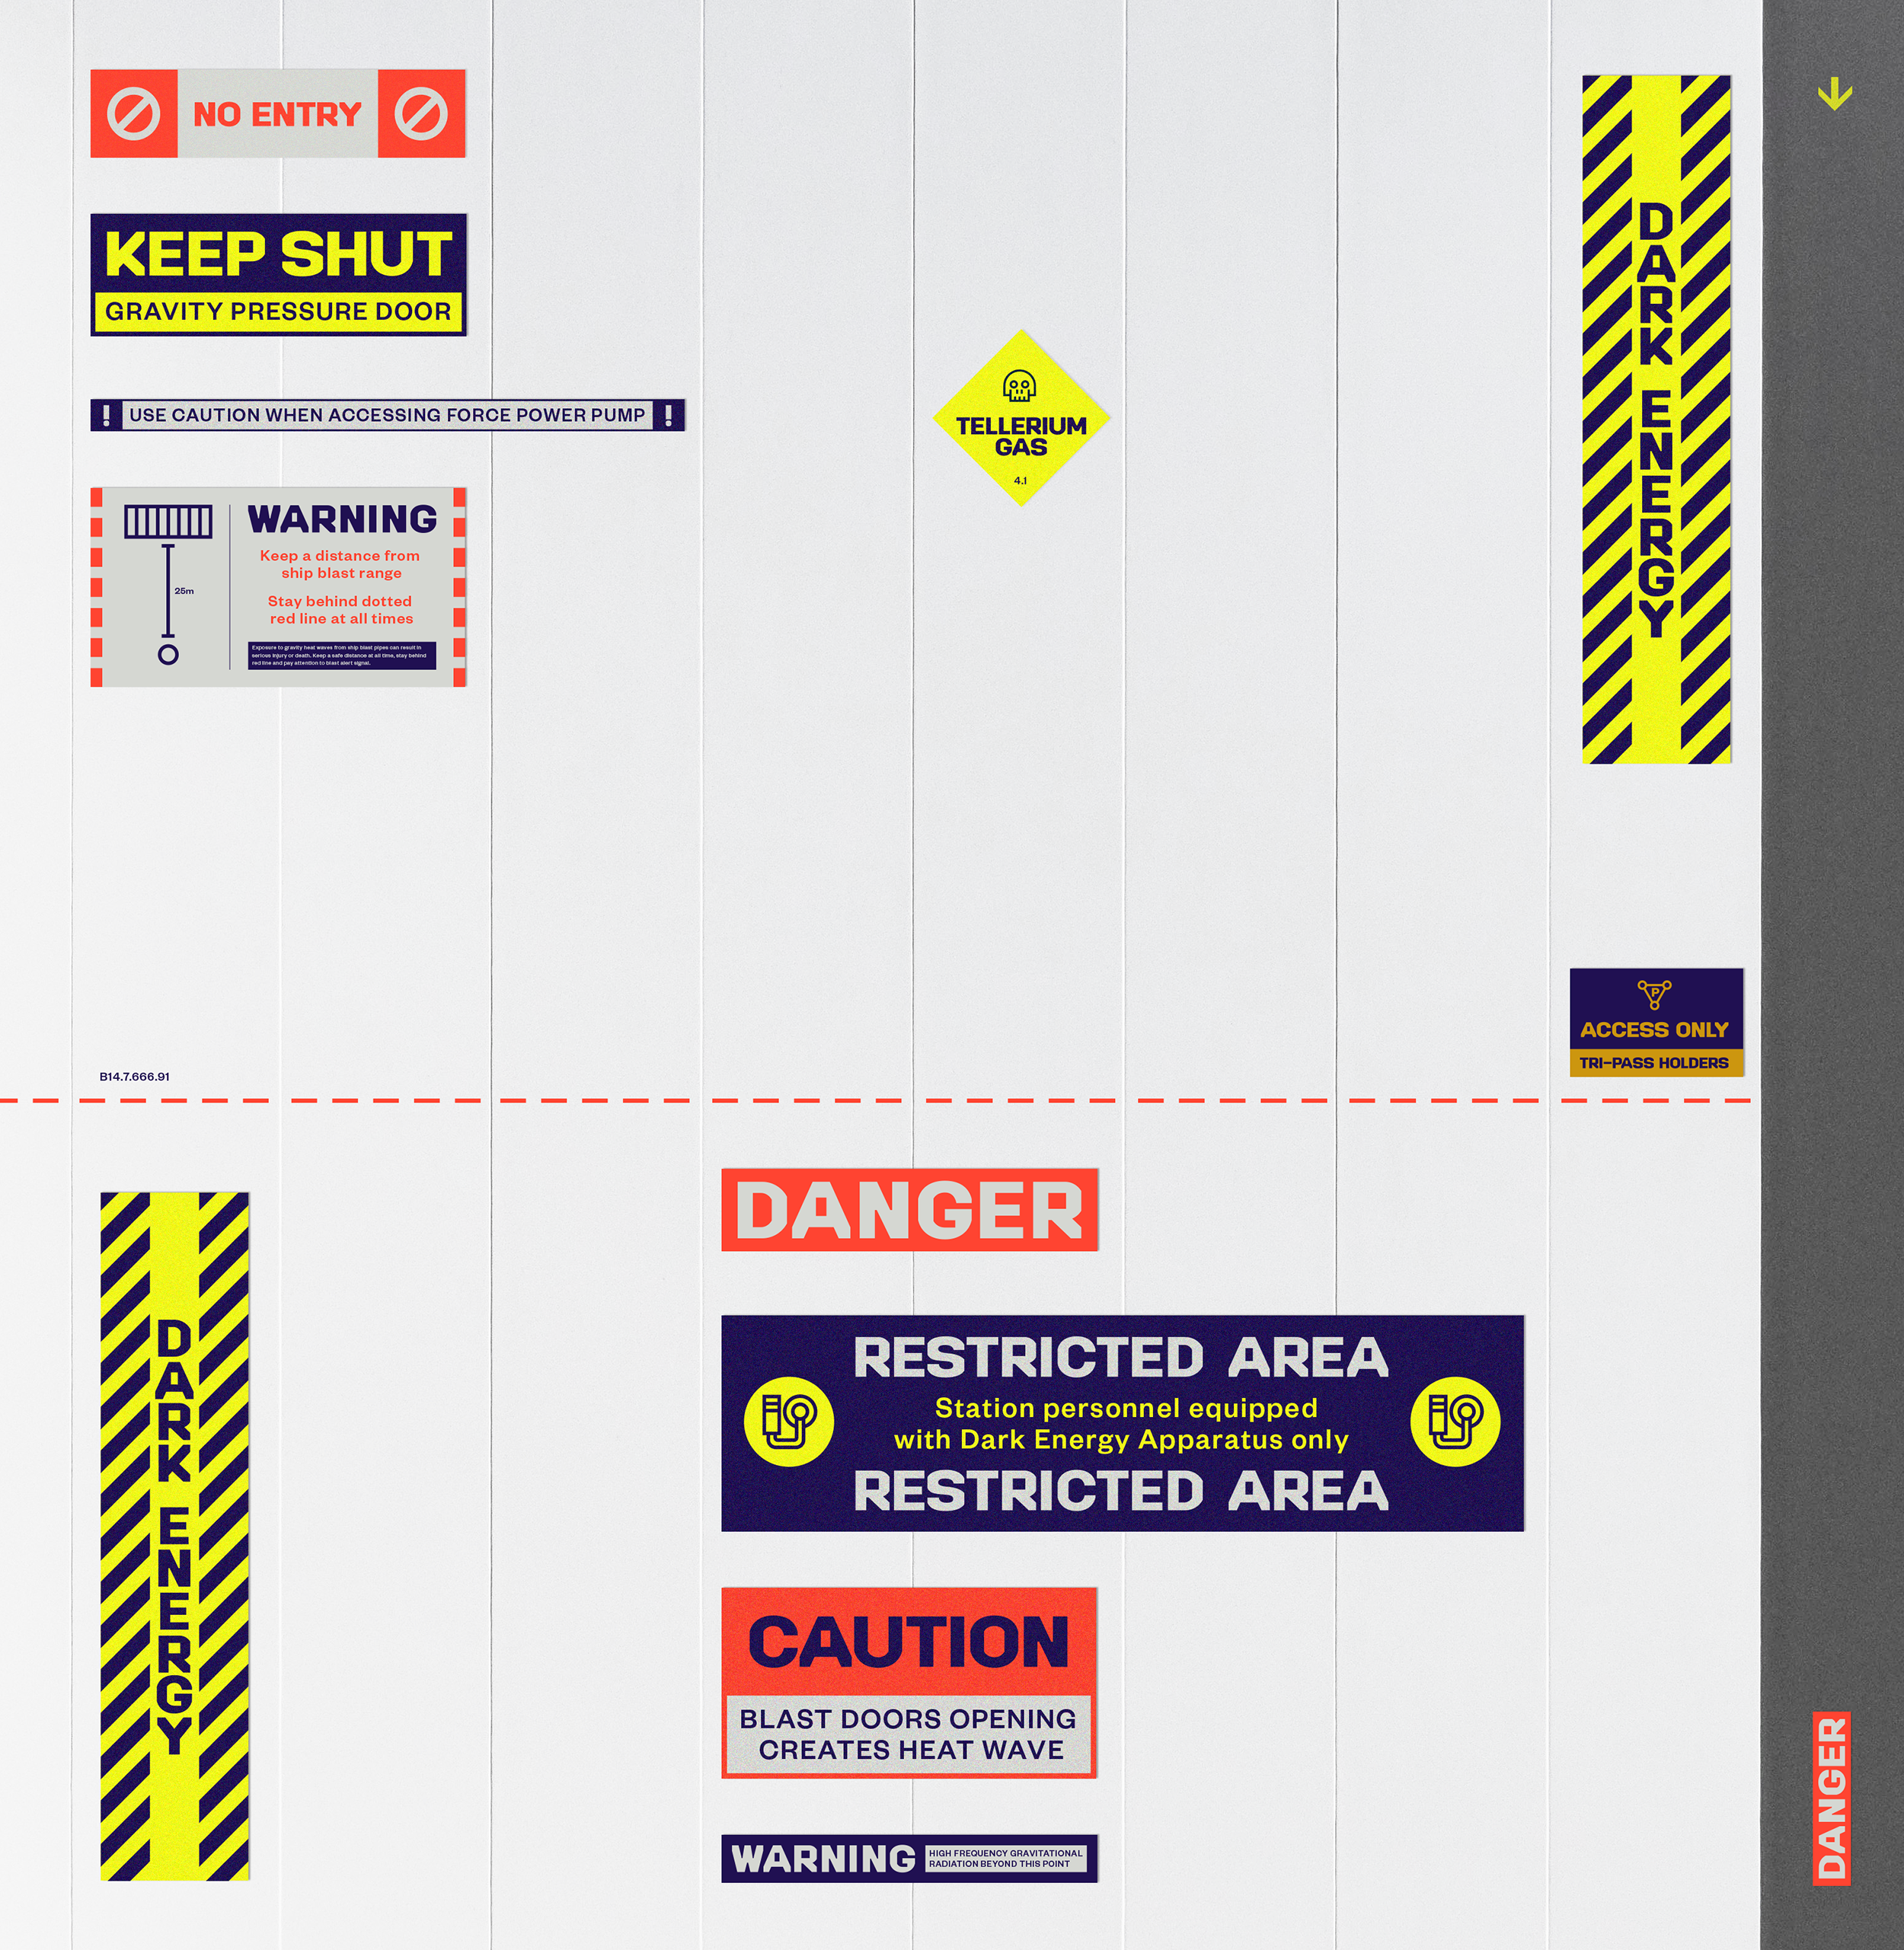 21_Trigalax-Space-Branding-Warning-Labels